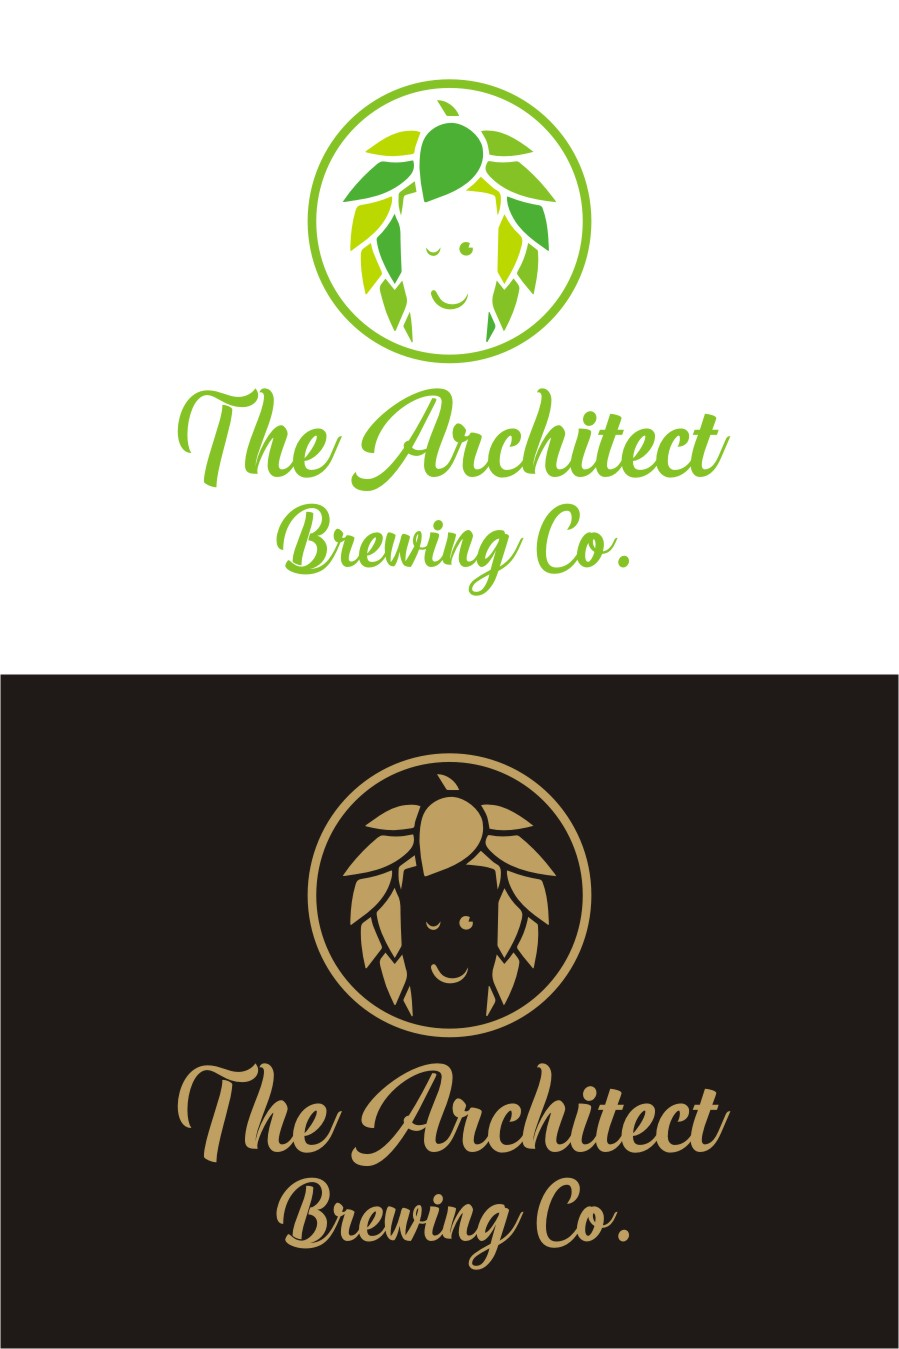 Logo Design by Spider Graphics - Entry No. 47 in the Logo Design Contest Captivating Logo Design for The Architect Brewing Co..